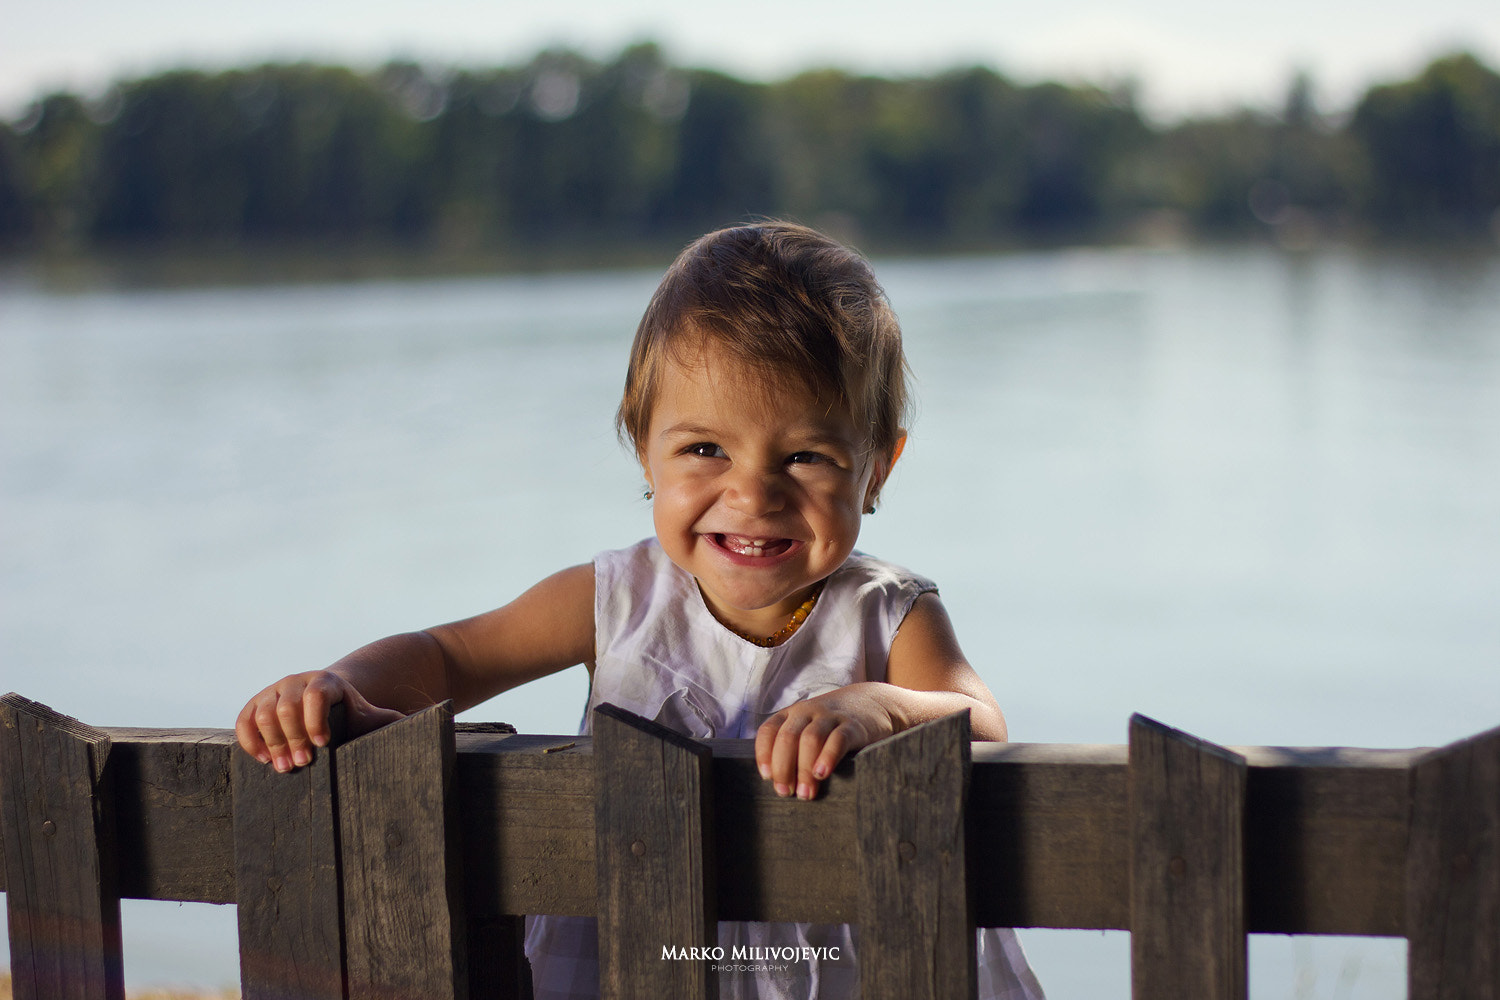 Photograph smile sweet smile by Marko Milivojevic on 500px